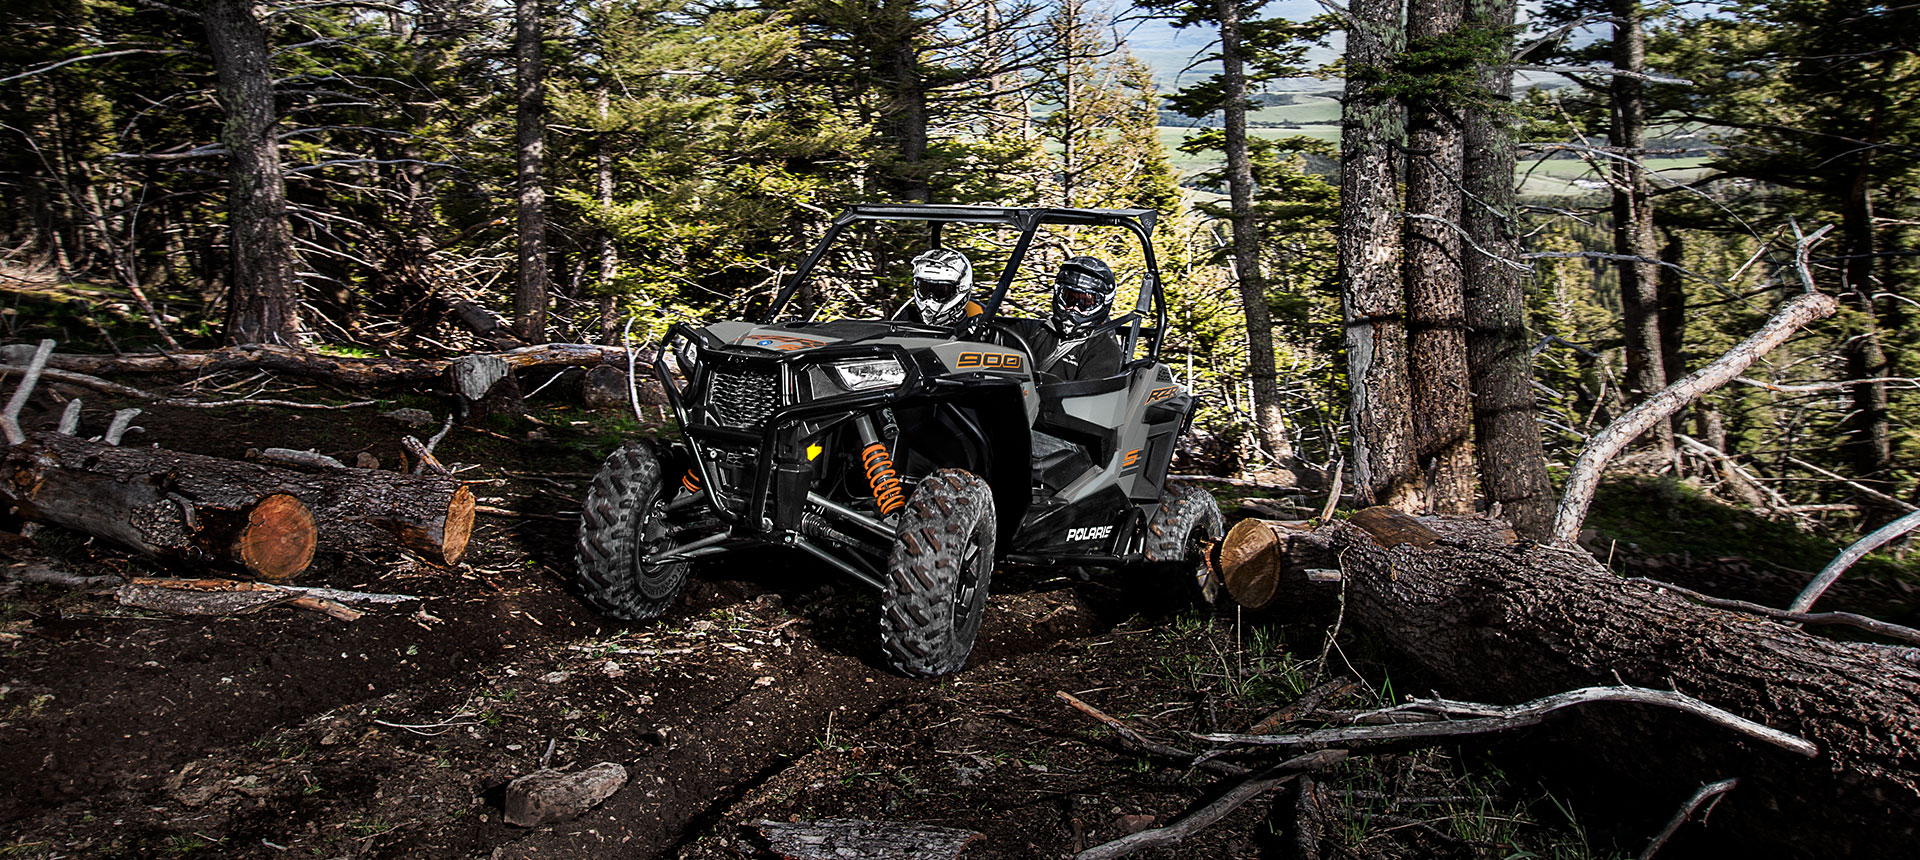 2019 Polaris RZR S 900 in Hermitage, Pennsylvania - Photo 2